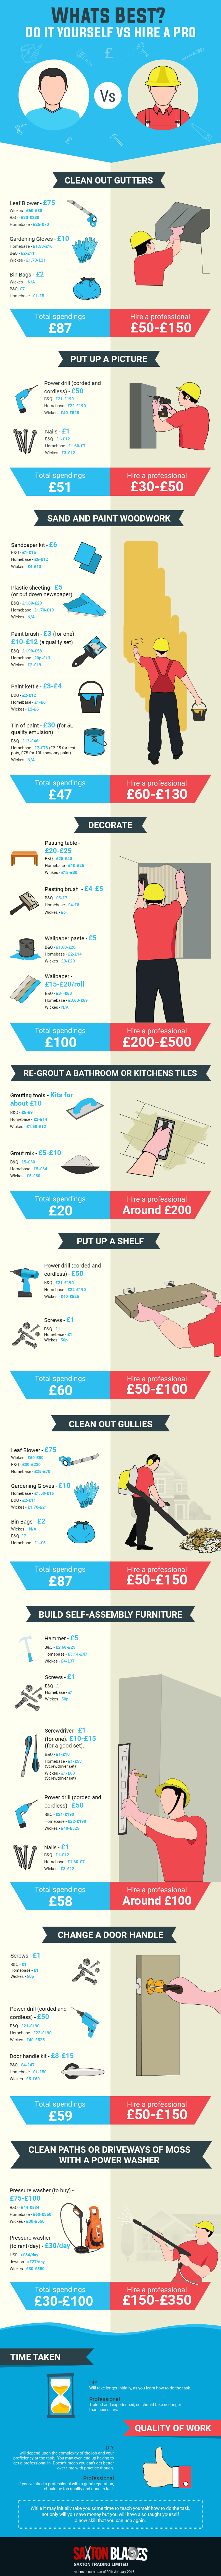 The-cost-of-DIY-vs-Hiring-a-Pro-INFOGRAPHIC